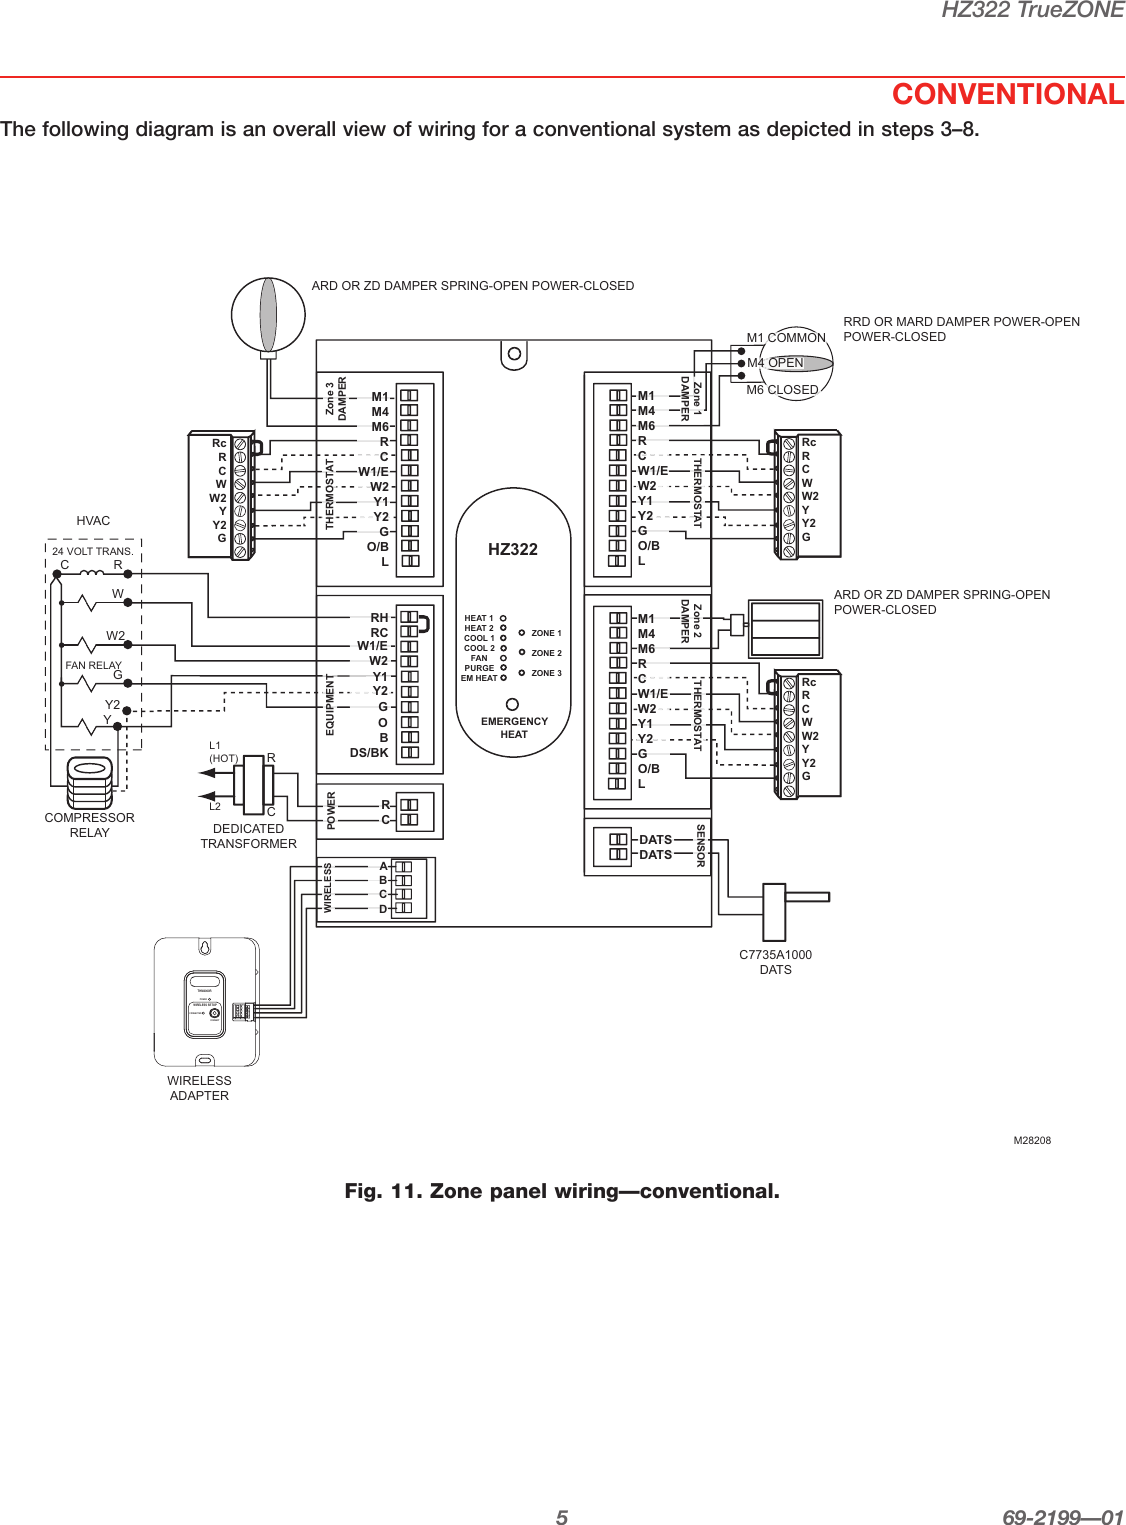 honeywell humidistat wiring diagram honeywell digital